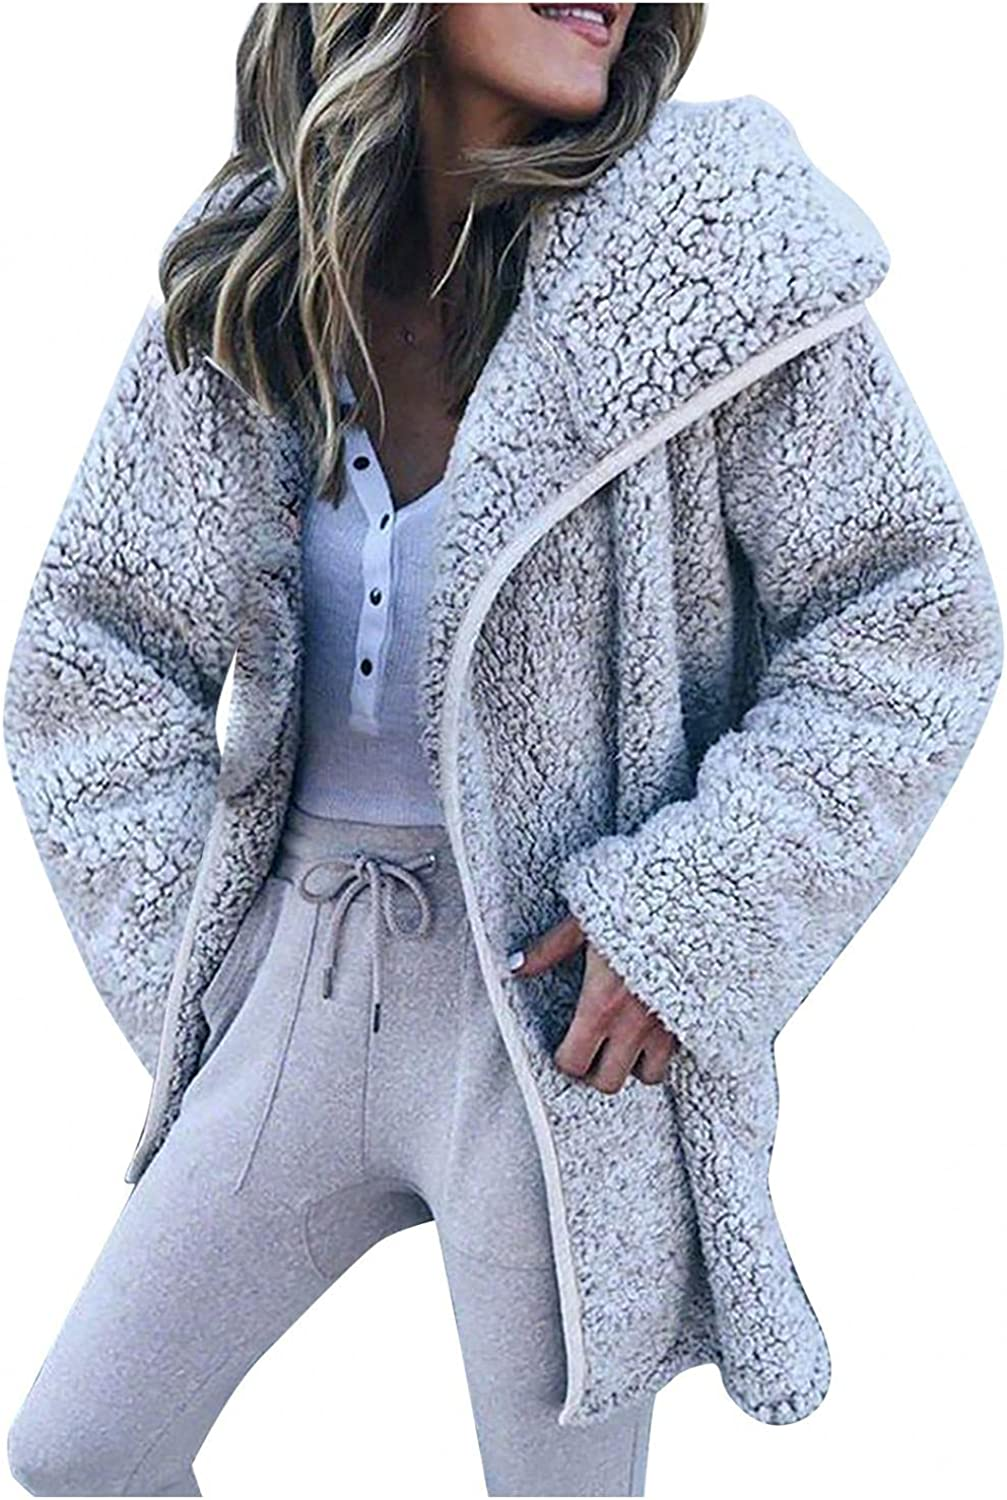 Blouses for Women Solid Color Warm Winter Cardigan Lapel Faux Loose Coat Jacket Casual Long Sleeve Outerwear